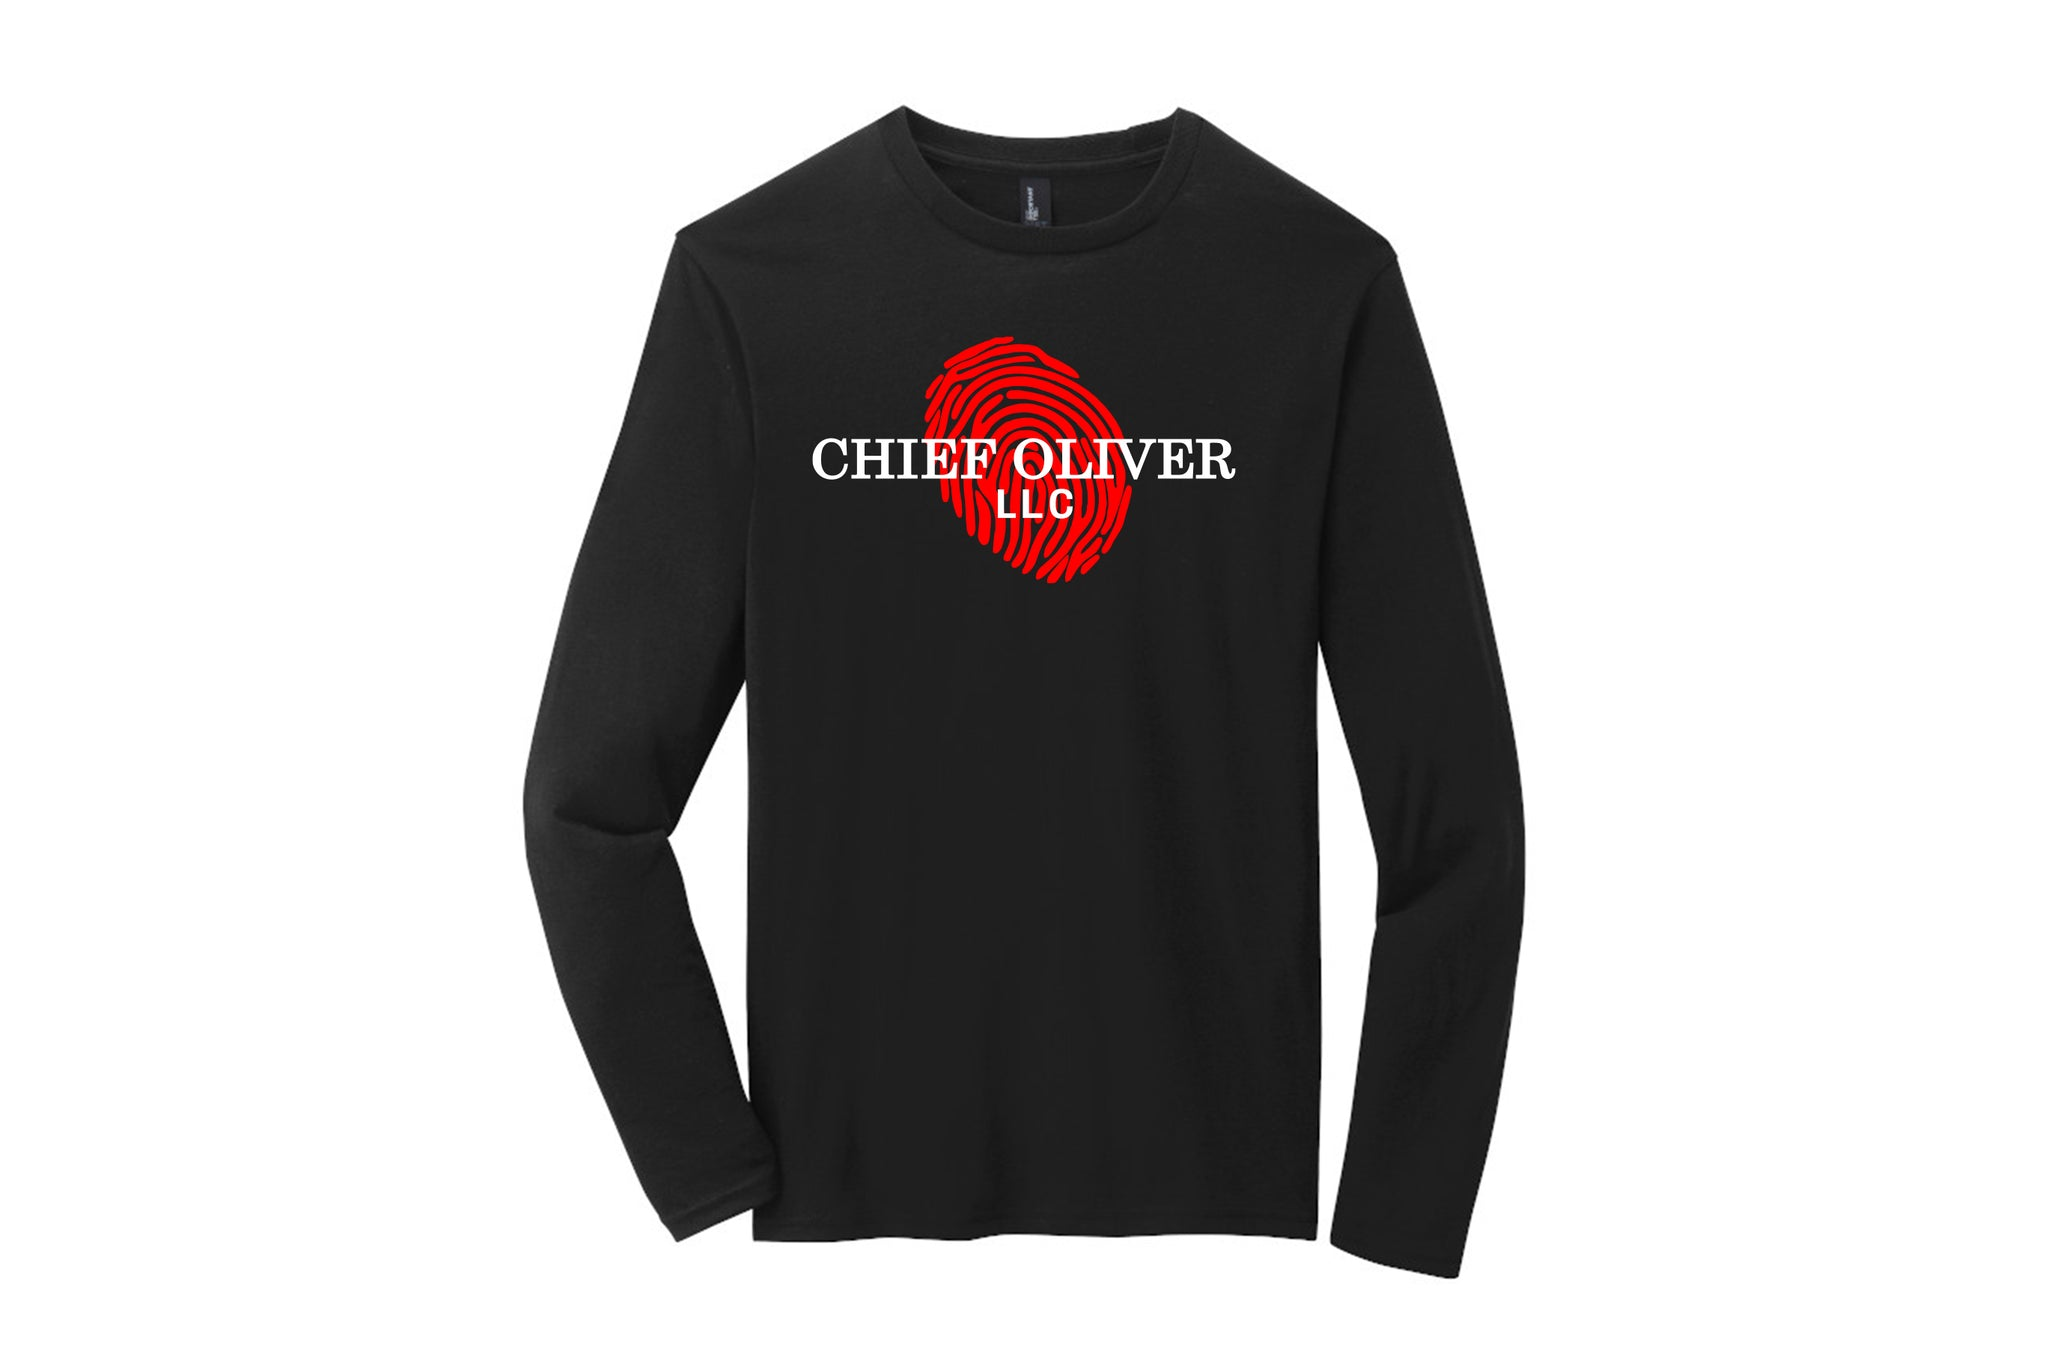 Chief Oliver Men's Long Sleeve T-Shirt